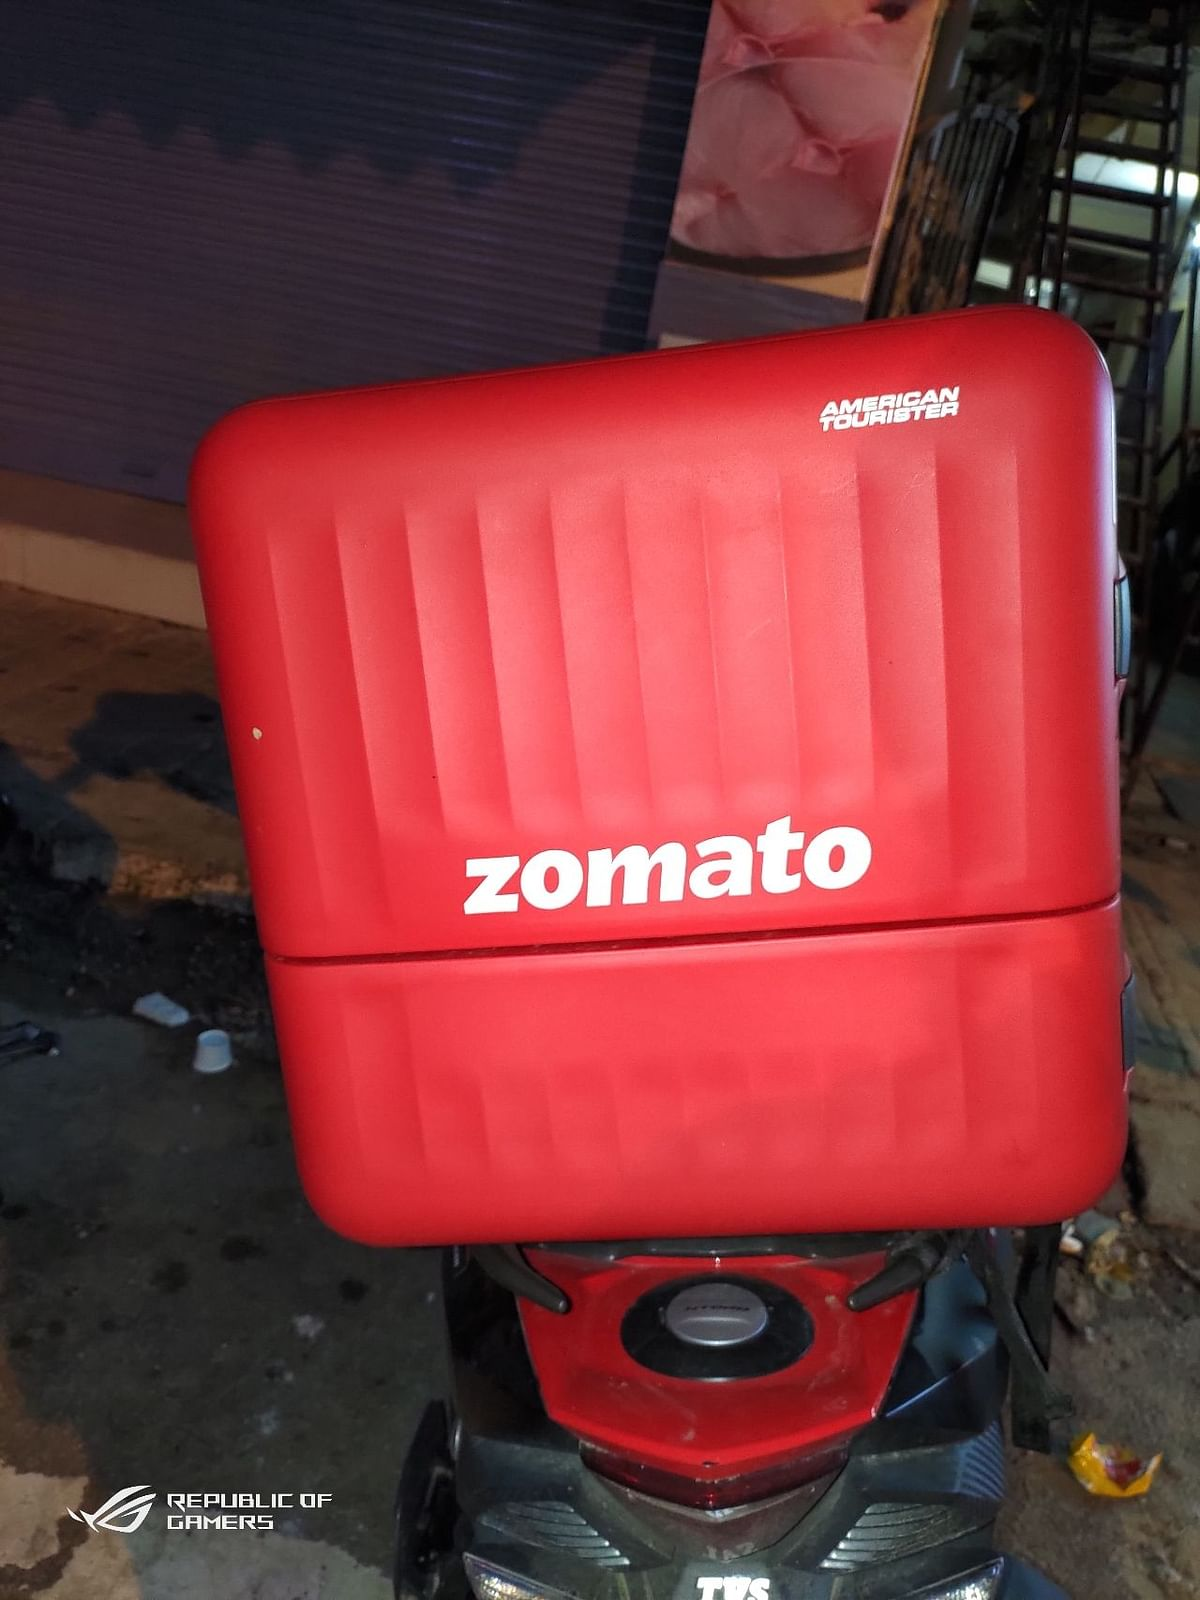 Meet the American Tourister branded Zomato delivery bag worth Rs 7k